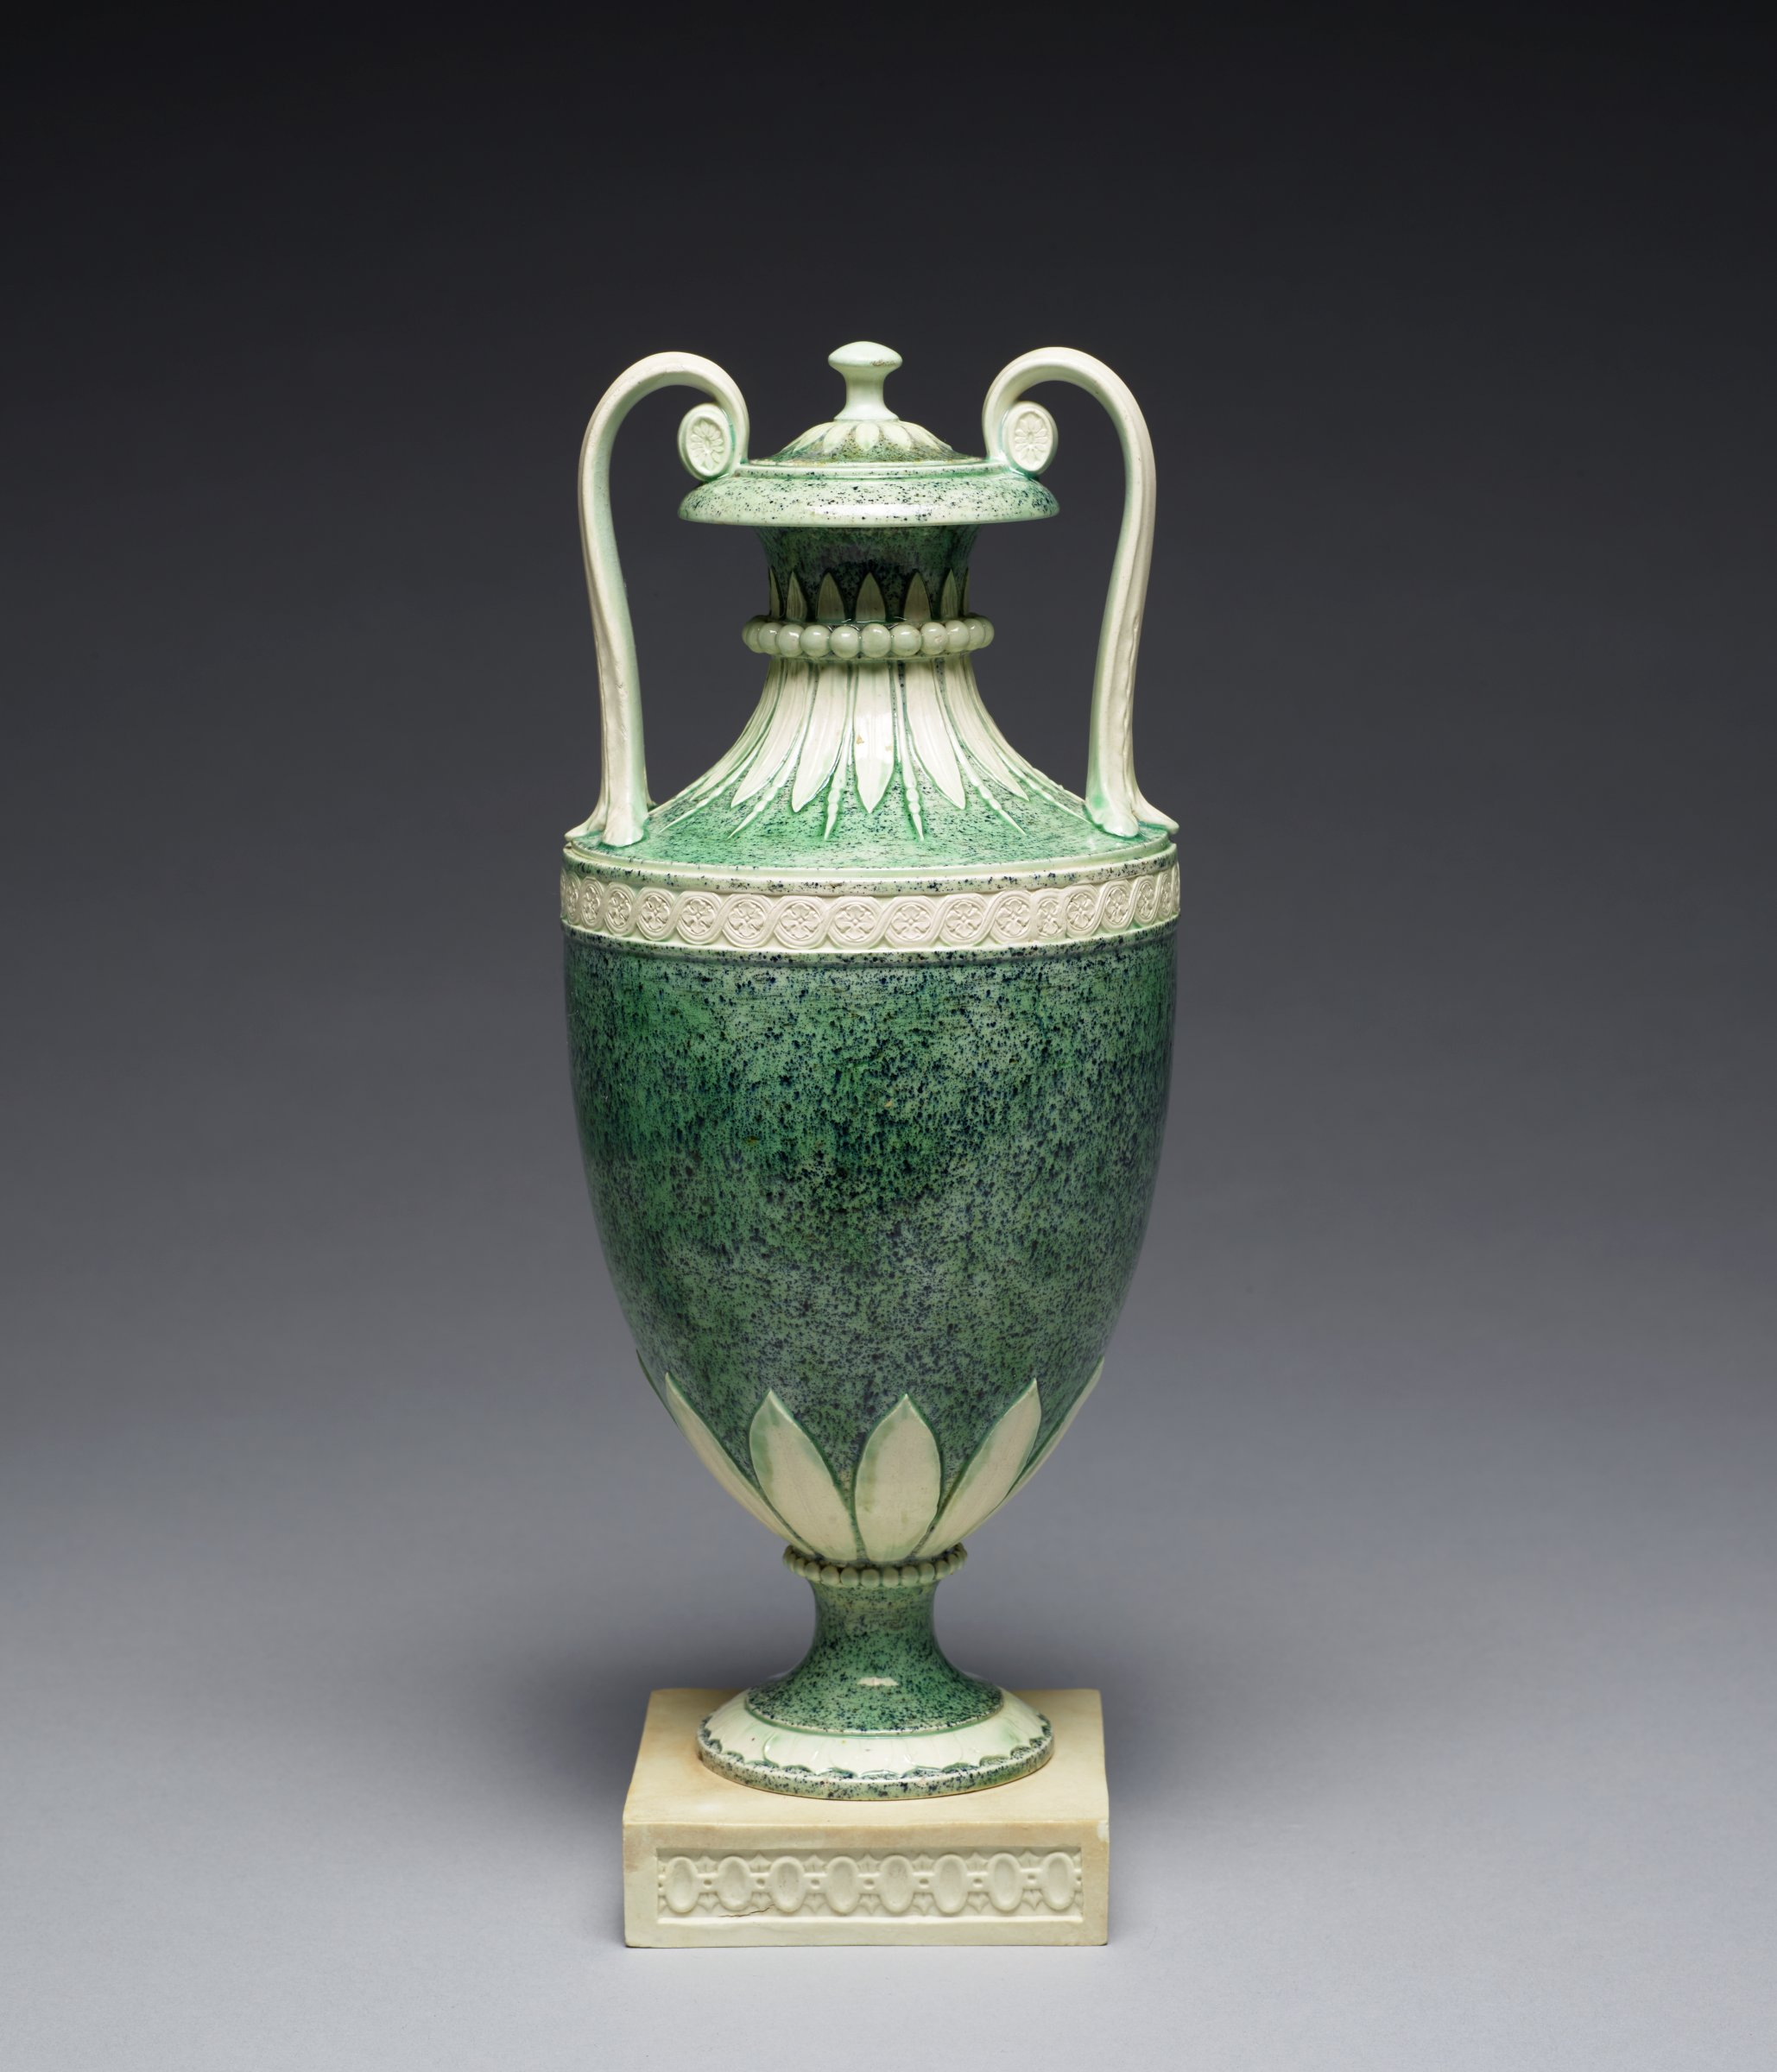 Tall, urn-shaped vase of white stoneware covered with a green variegated glaze and resting on a small, square white stoneware plinth with diaper pattern around, the round foot with overlapping leaves and band of beading at the joint, the lower body with a band of stiff leaf motifs, with a wavescroll pattern below the shoulder and two long curved handles, the elongated neck likewise with band of stiff leaf motifs and beading, the cover with band of leaves and mushroom finial.